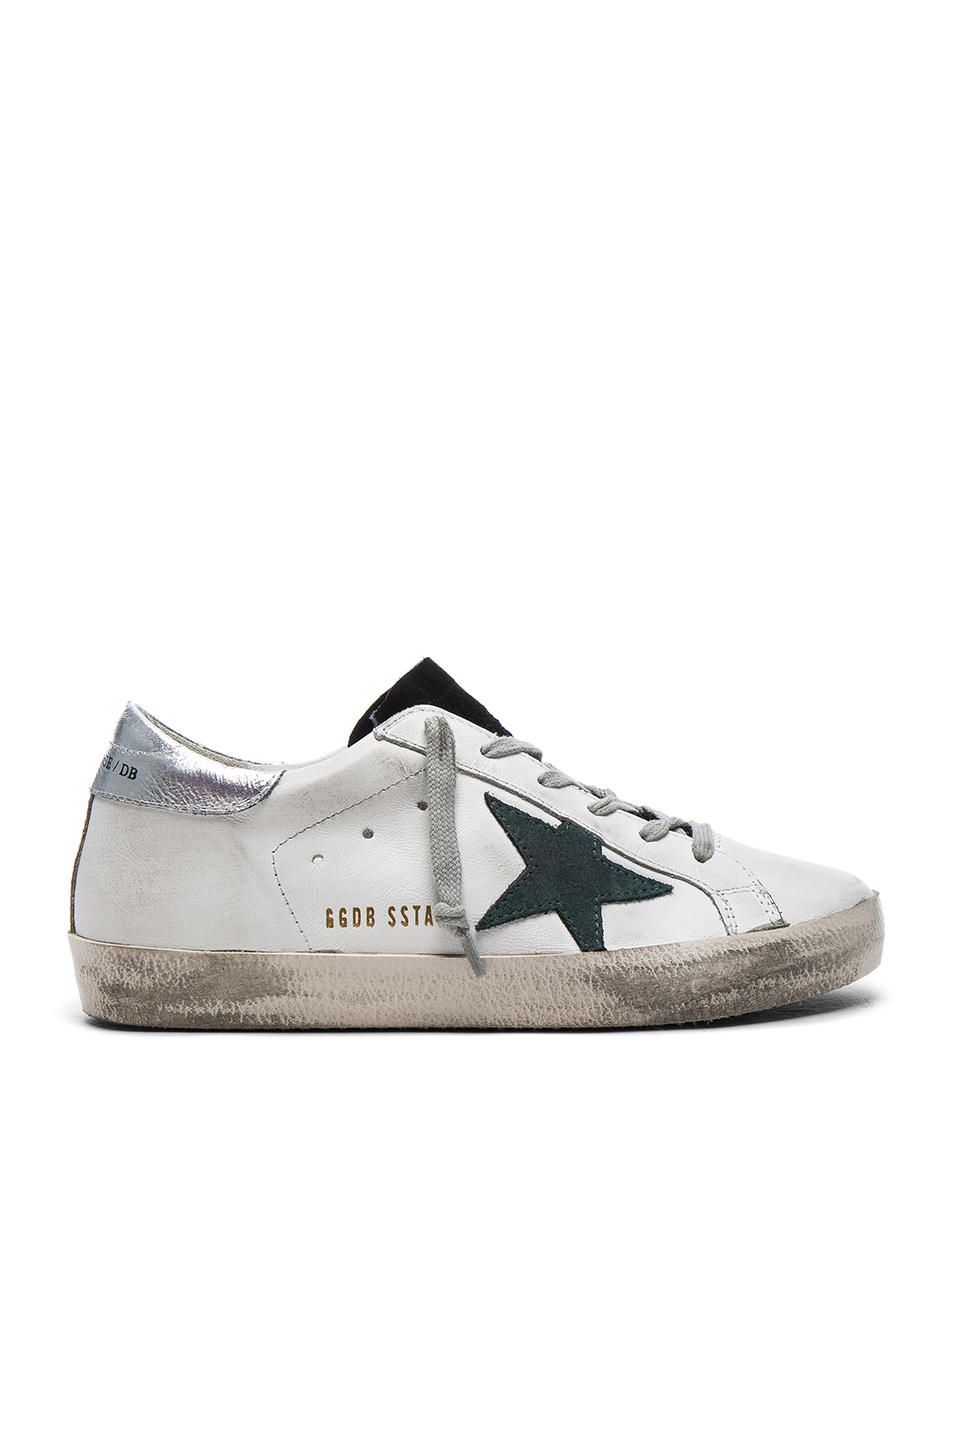 Golden Goose Leather Superstar Low Sneakers in White